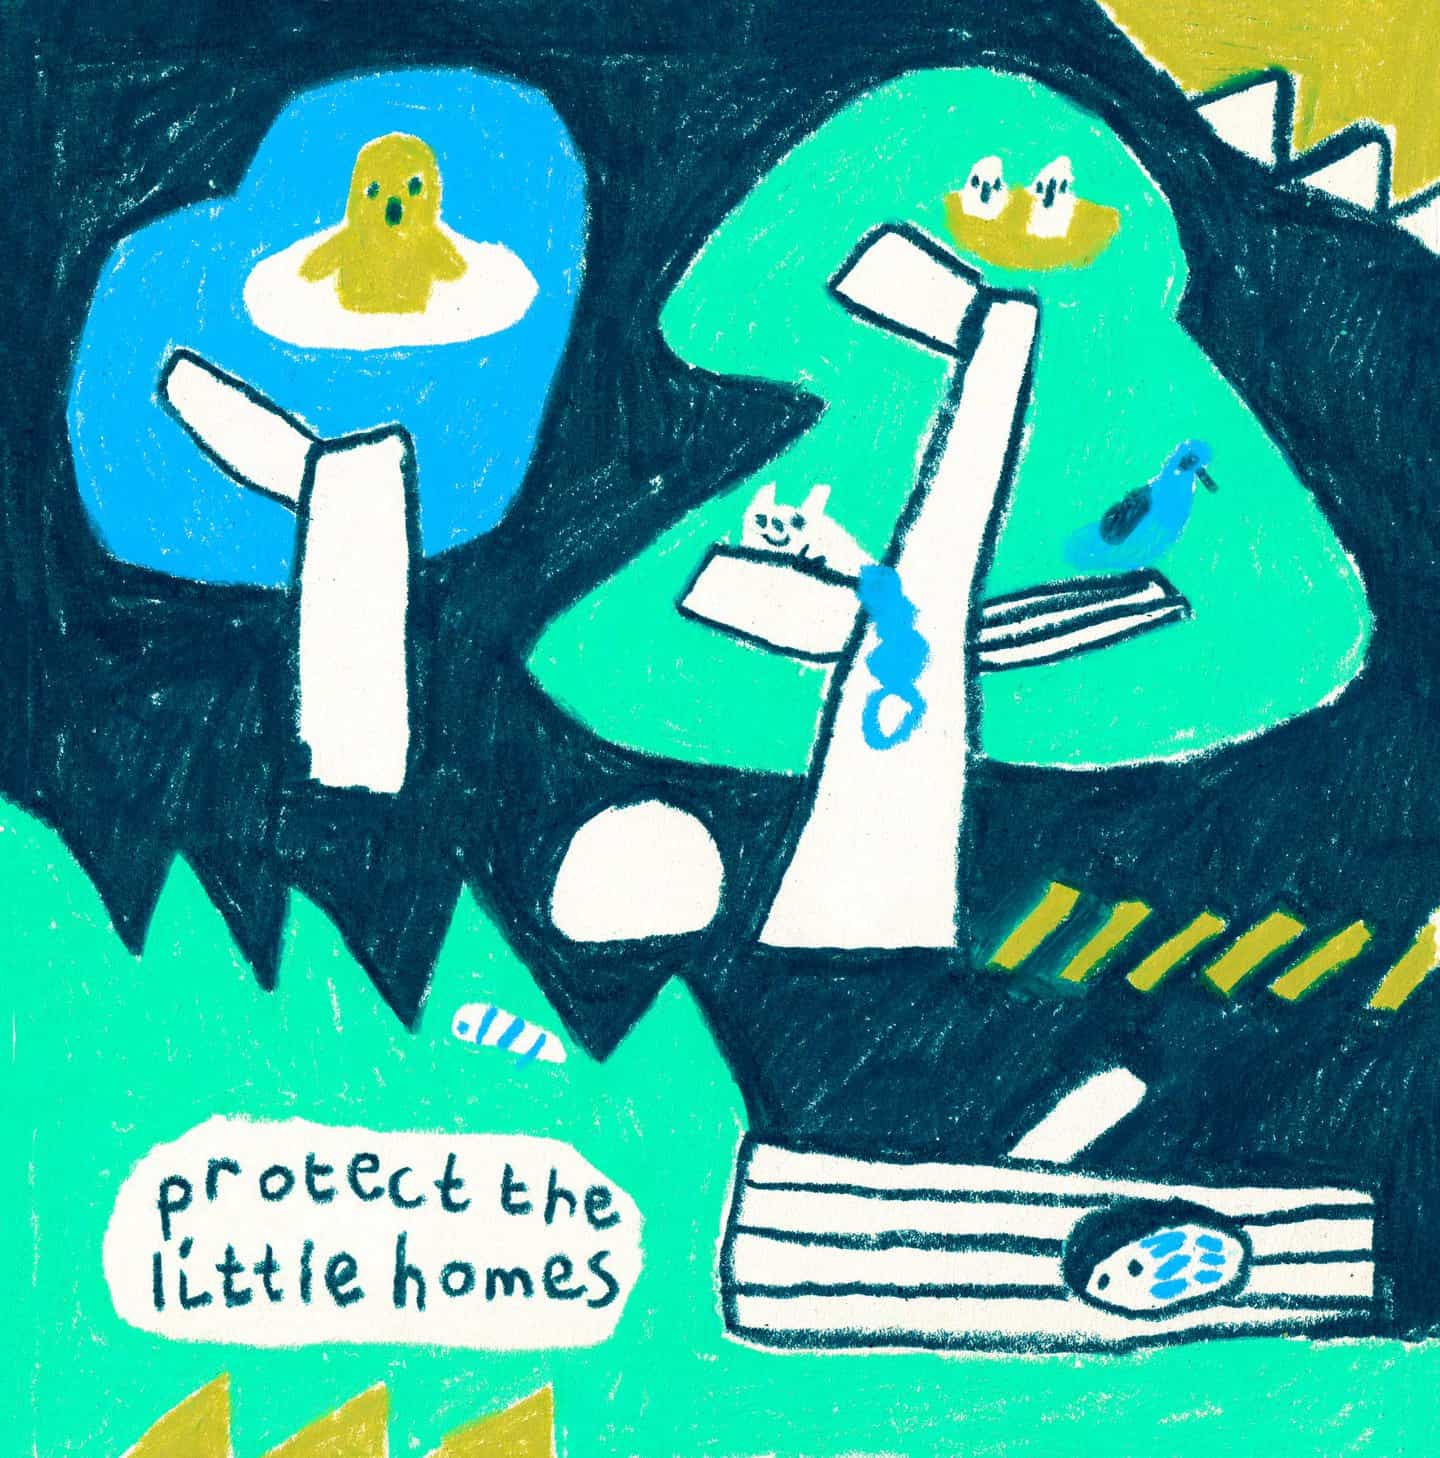 Cara Rooney: Protect the Little Homes (Copyright © Cara Rooney, 2021)